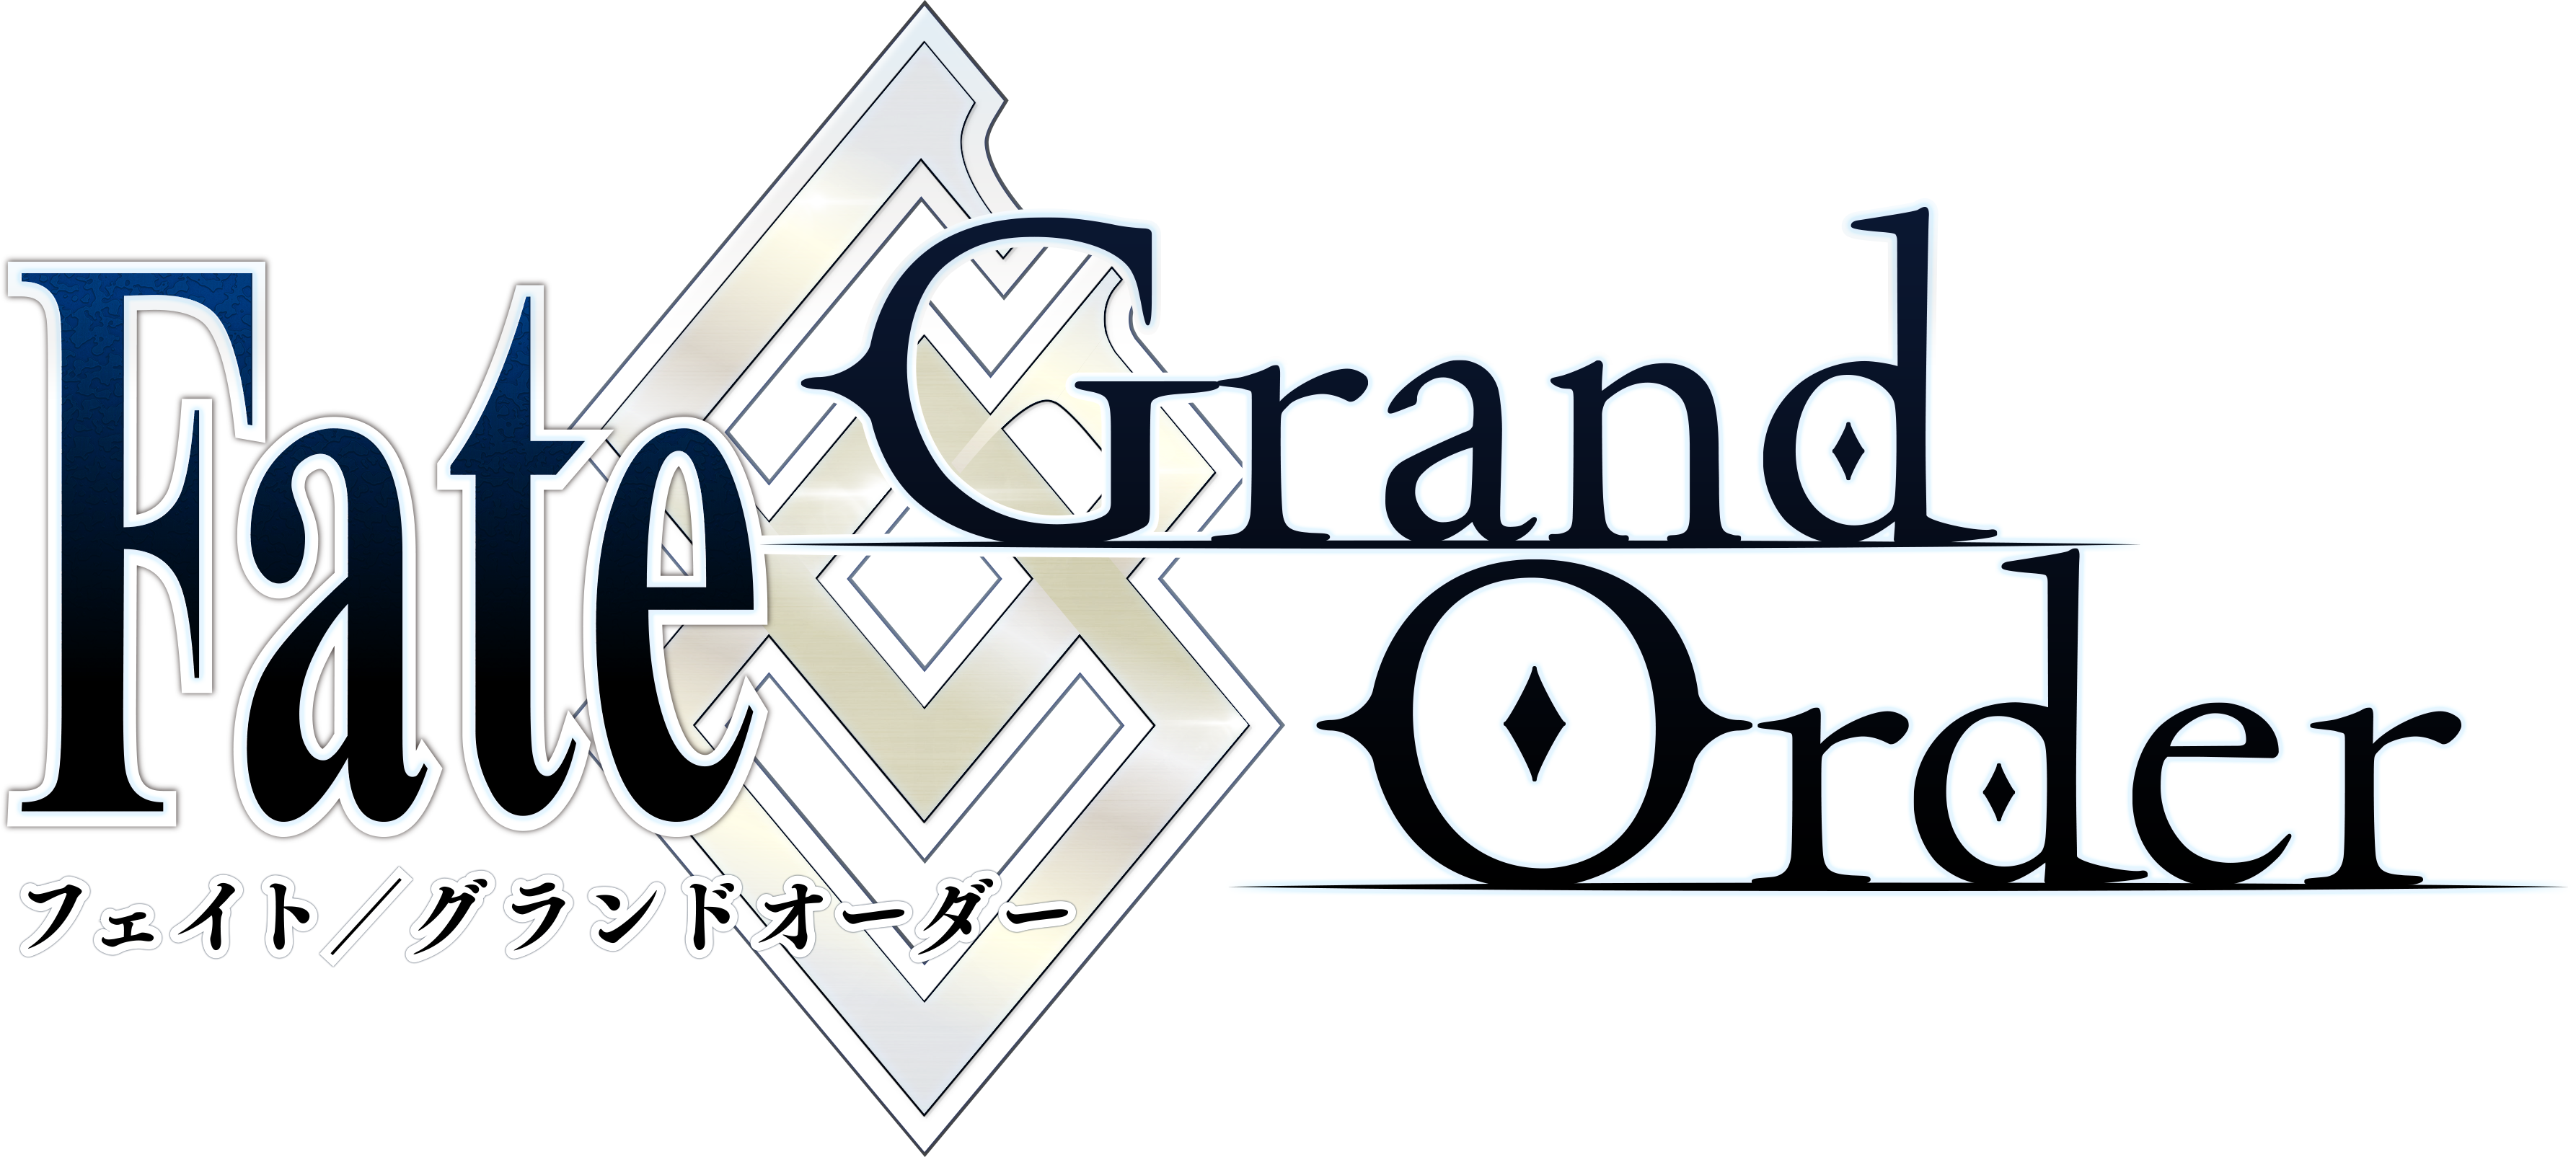 Fate_Grand_order_logo_fix-統合済み